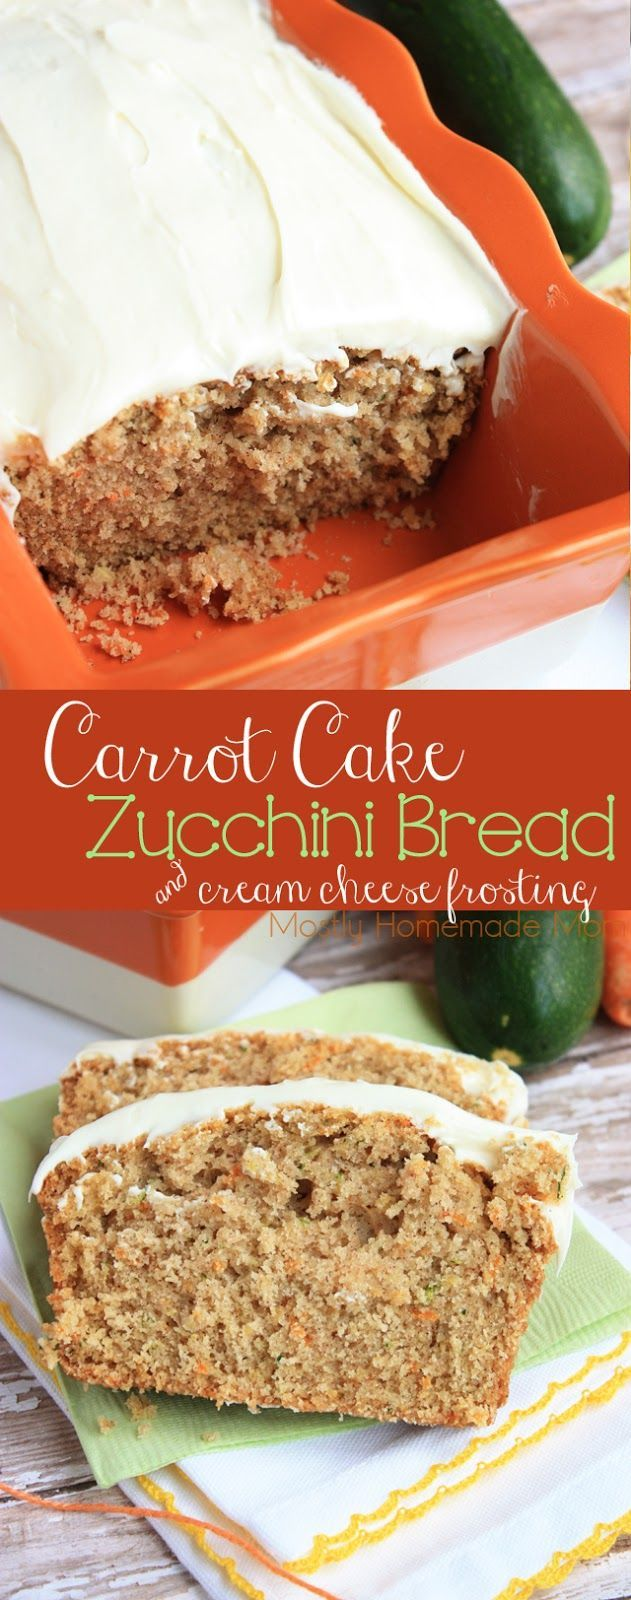 Cake Zucchini Bread Carrot Cake Zucchini Bread - This delicious bread combines moist carrot cake with spiced zucchini bread and topped with a homemade cream cheese icing. You'll get two breads from this recipe - give one to a friend!Carrot Cake Zucchini Bread - This delicious bread combines moist carrot cake with spiced zucchini bread and topped with a homemad...